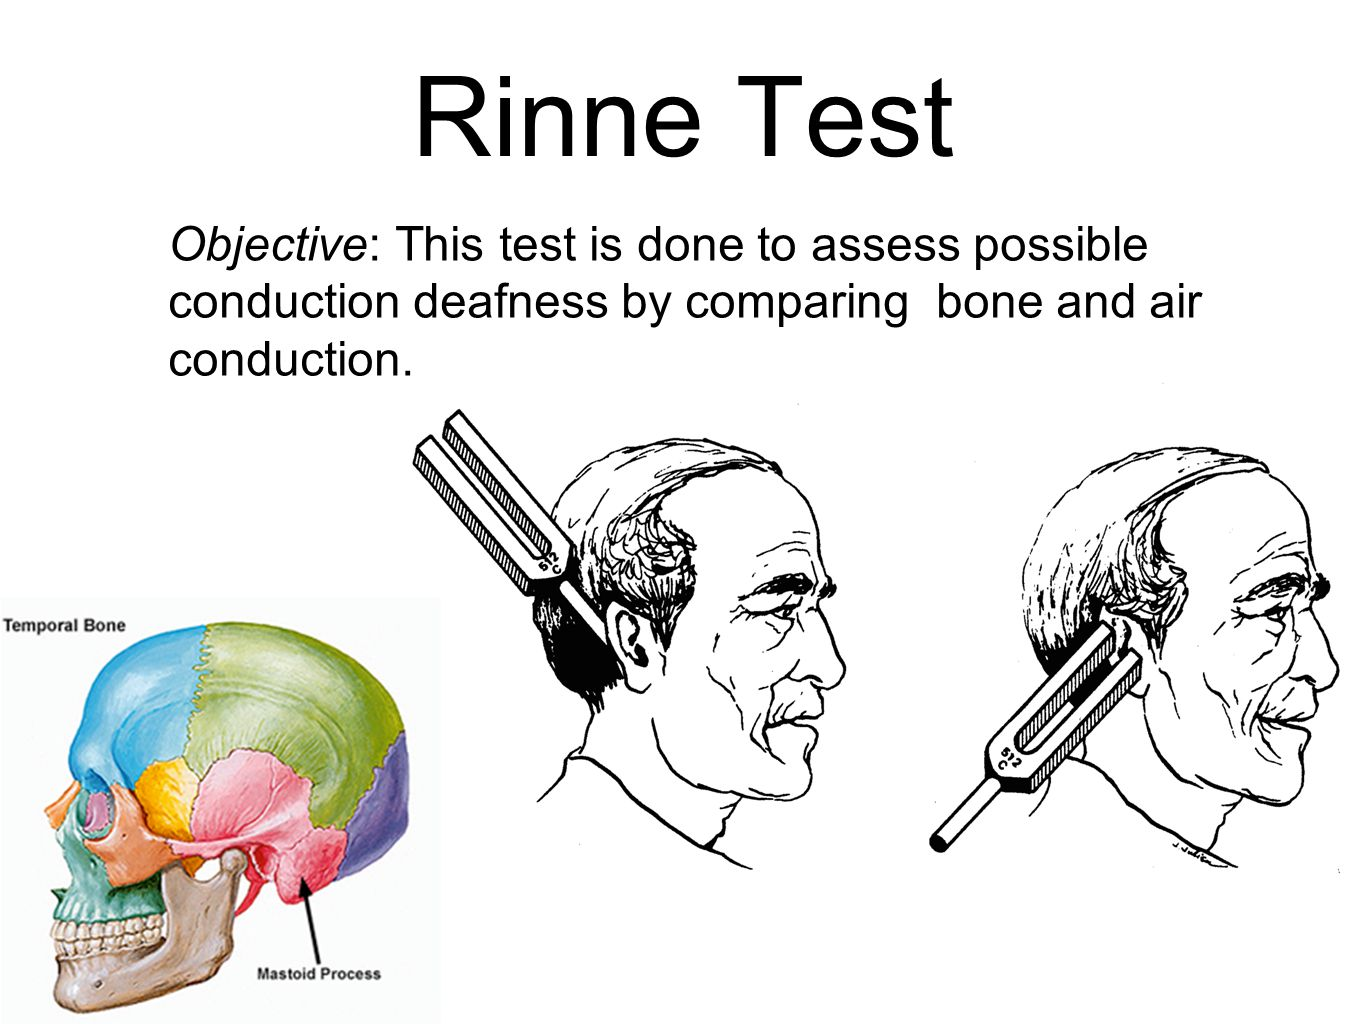 Rinne Test Objective: This test is done to assess possible conduction deafness by comparing bone and air conduction.